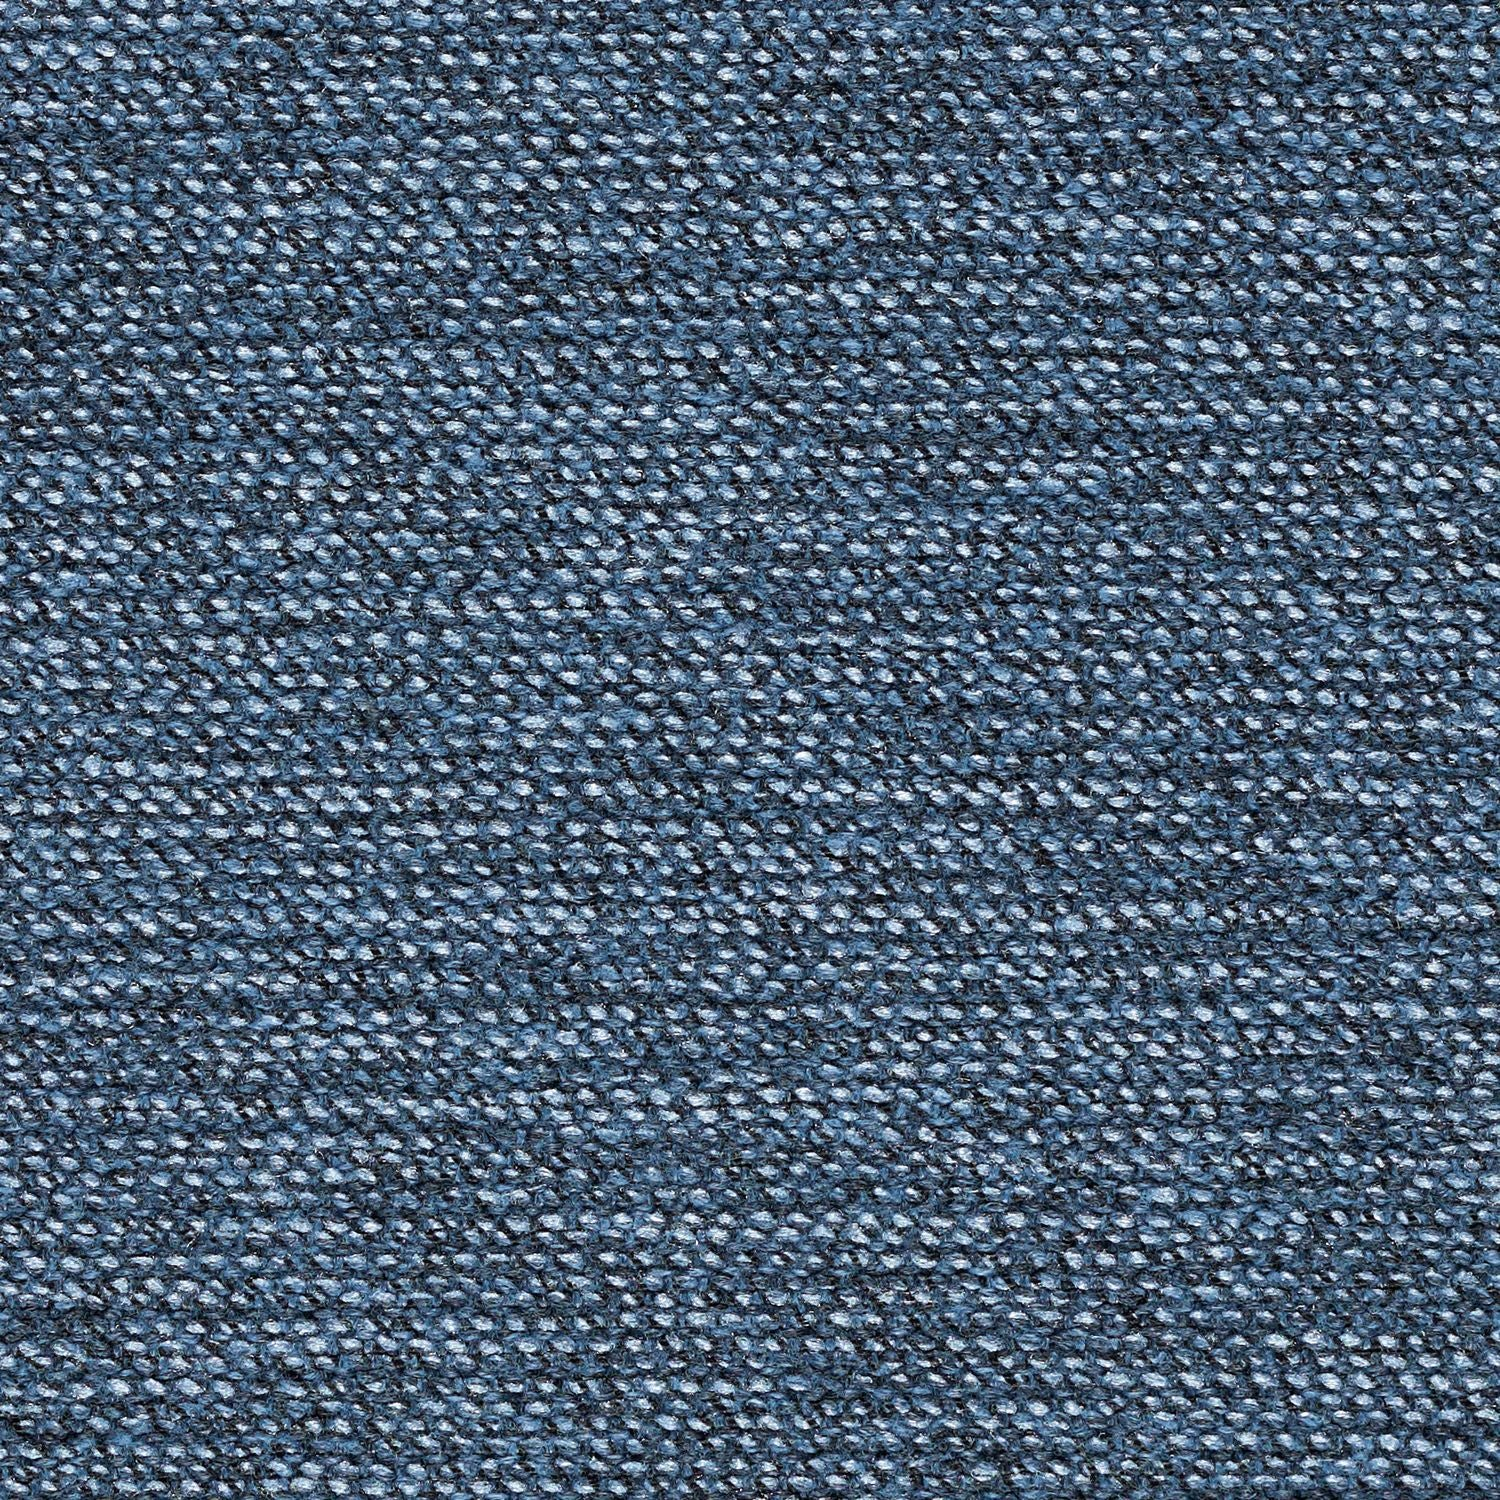 Superspun - Bluing - 4064 - 12